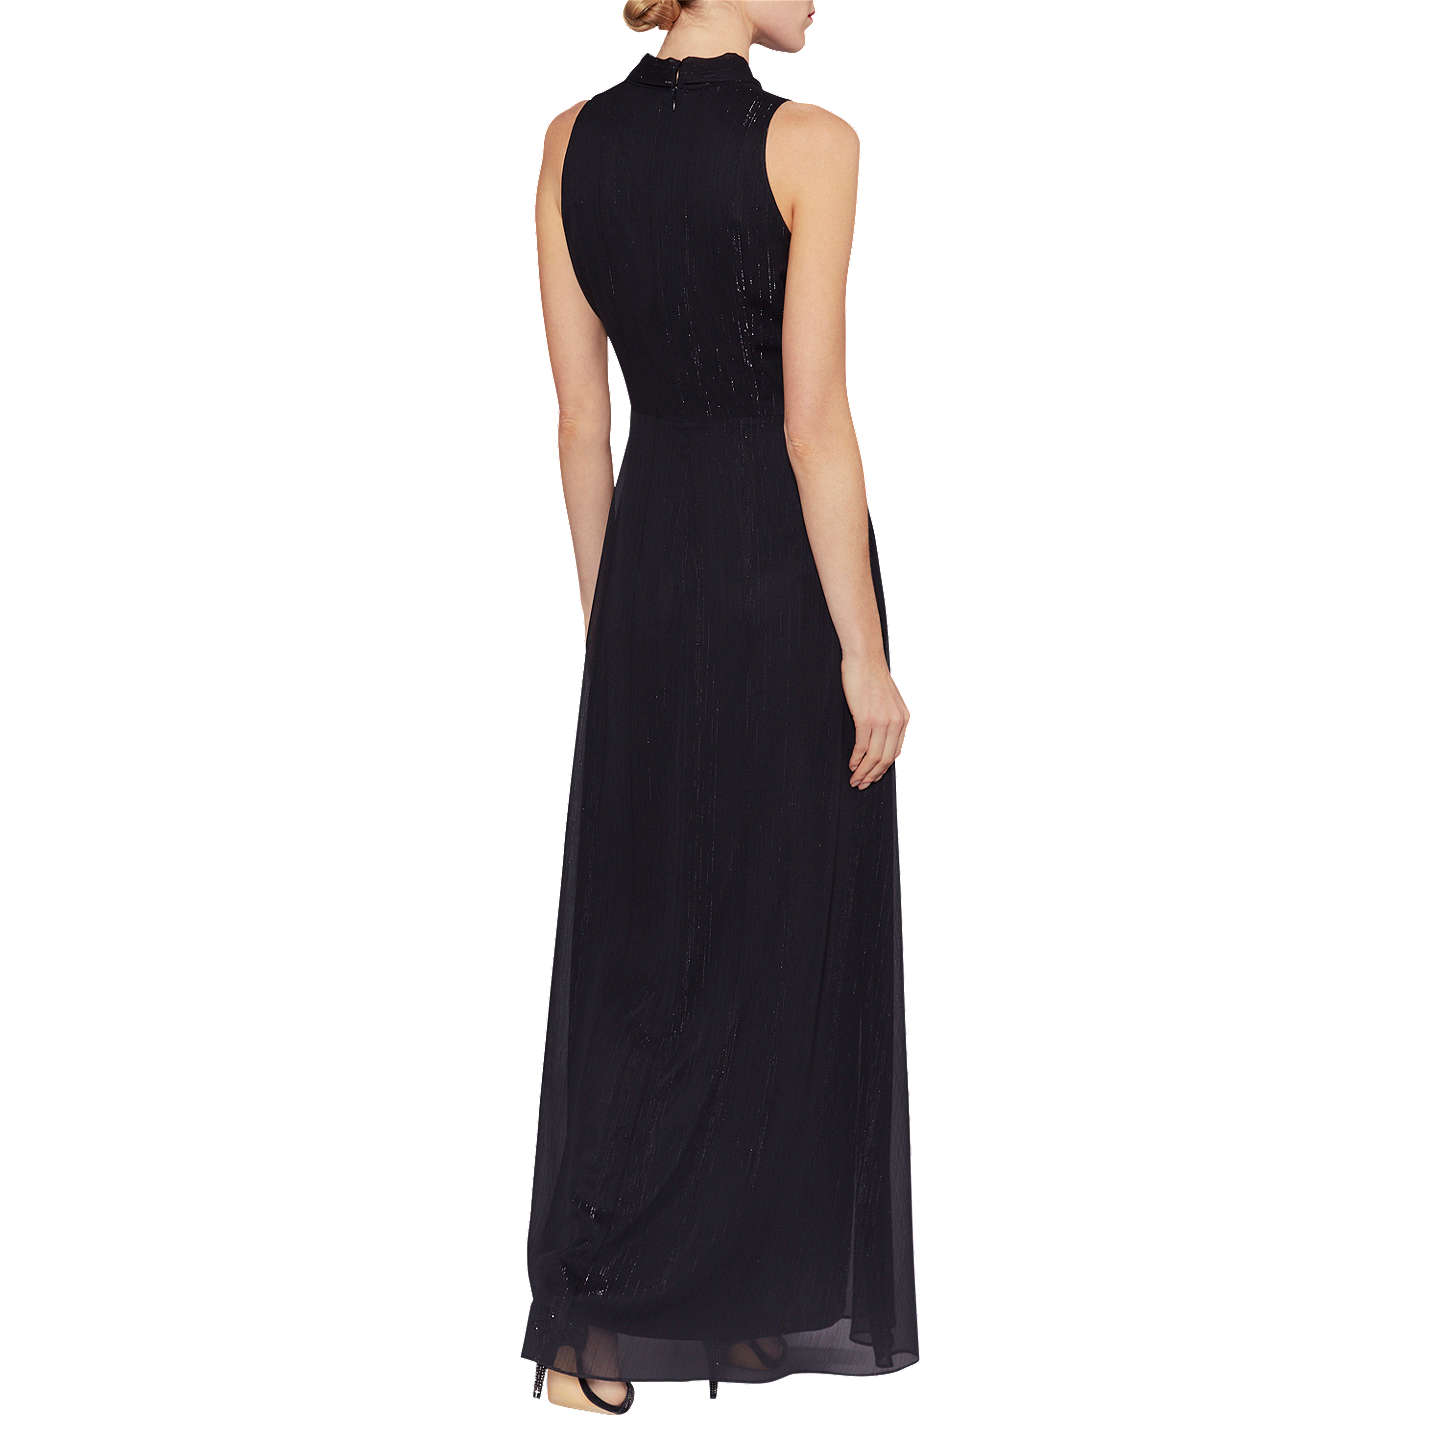 BuyGina Bacconi Yvette Met Effect Maxi Dress, Black, 10 Online at johnlewis.com